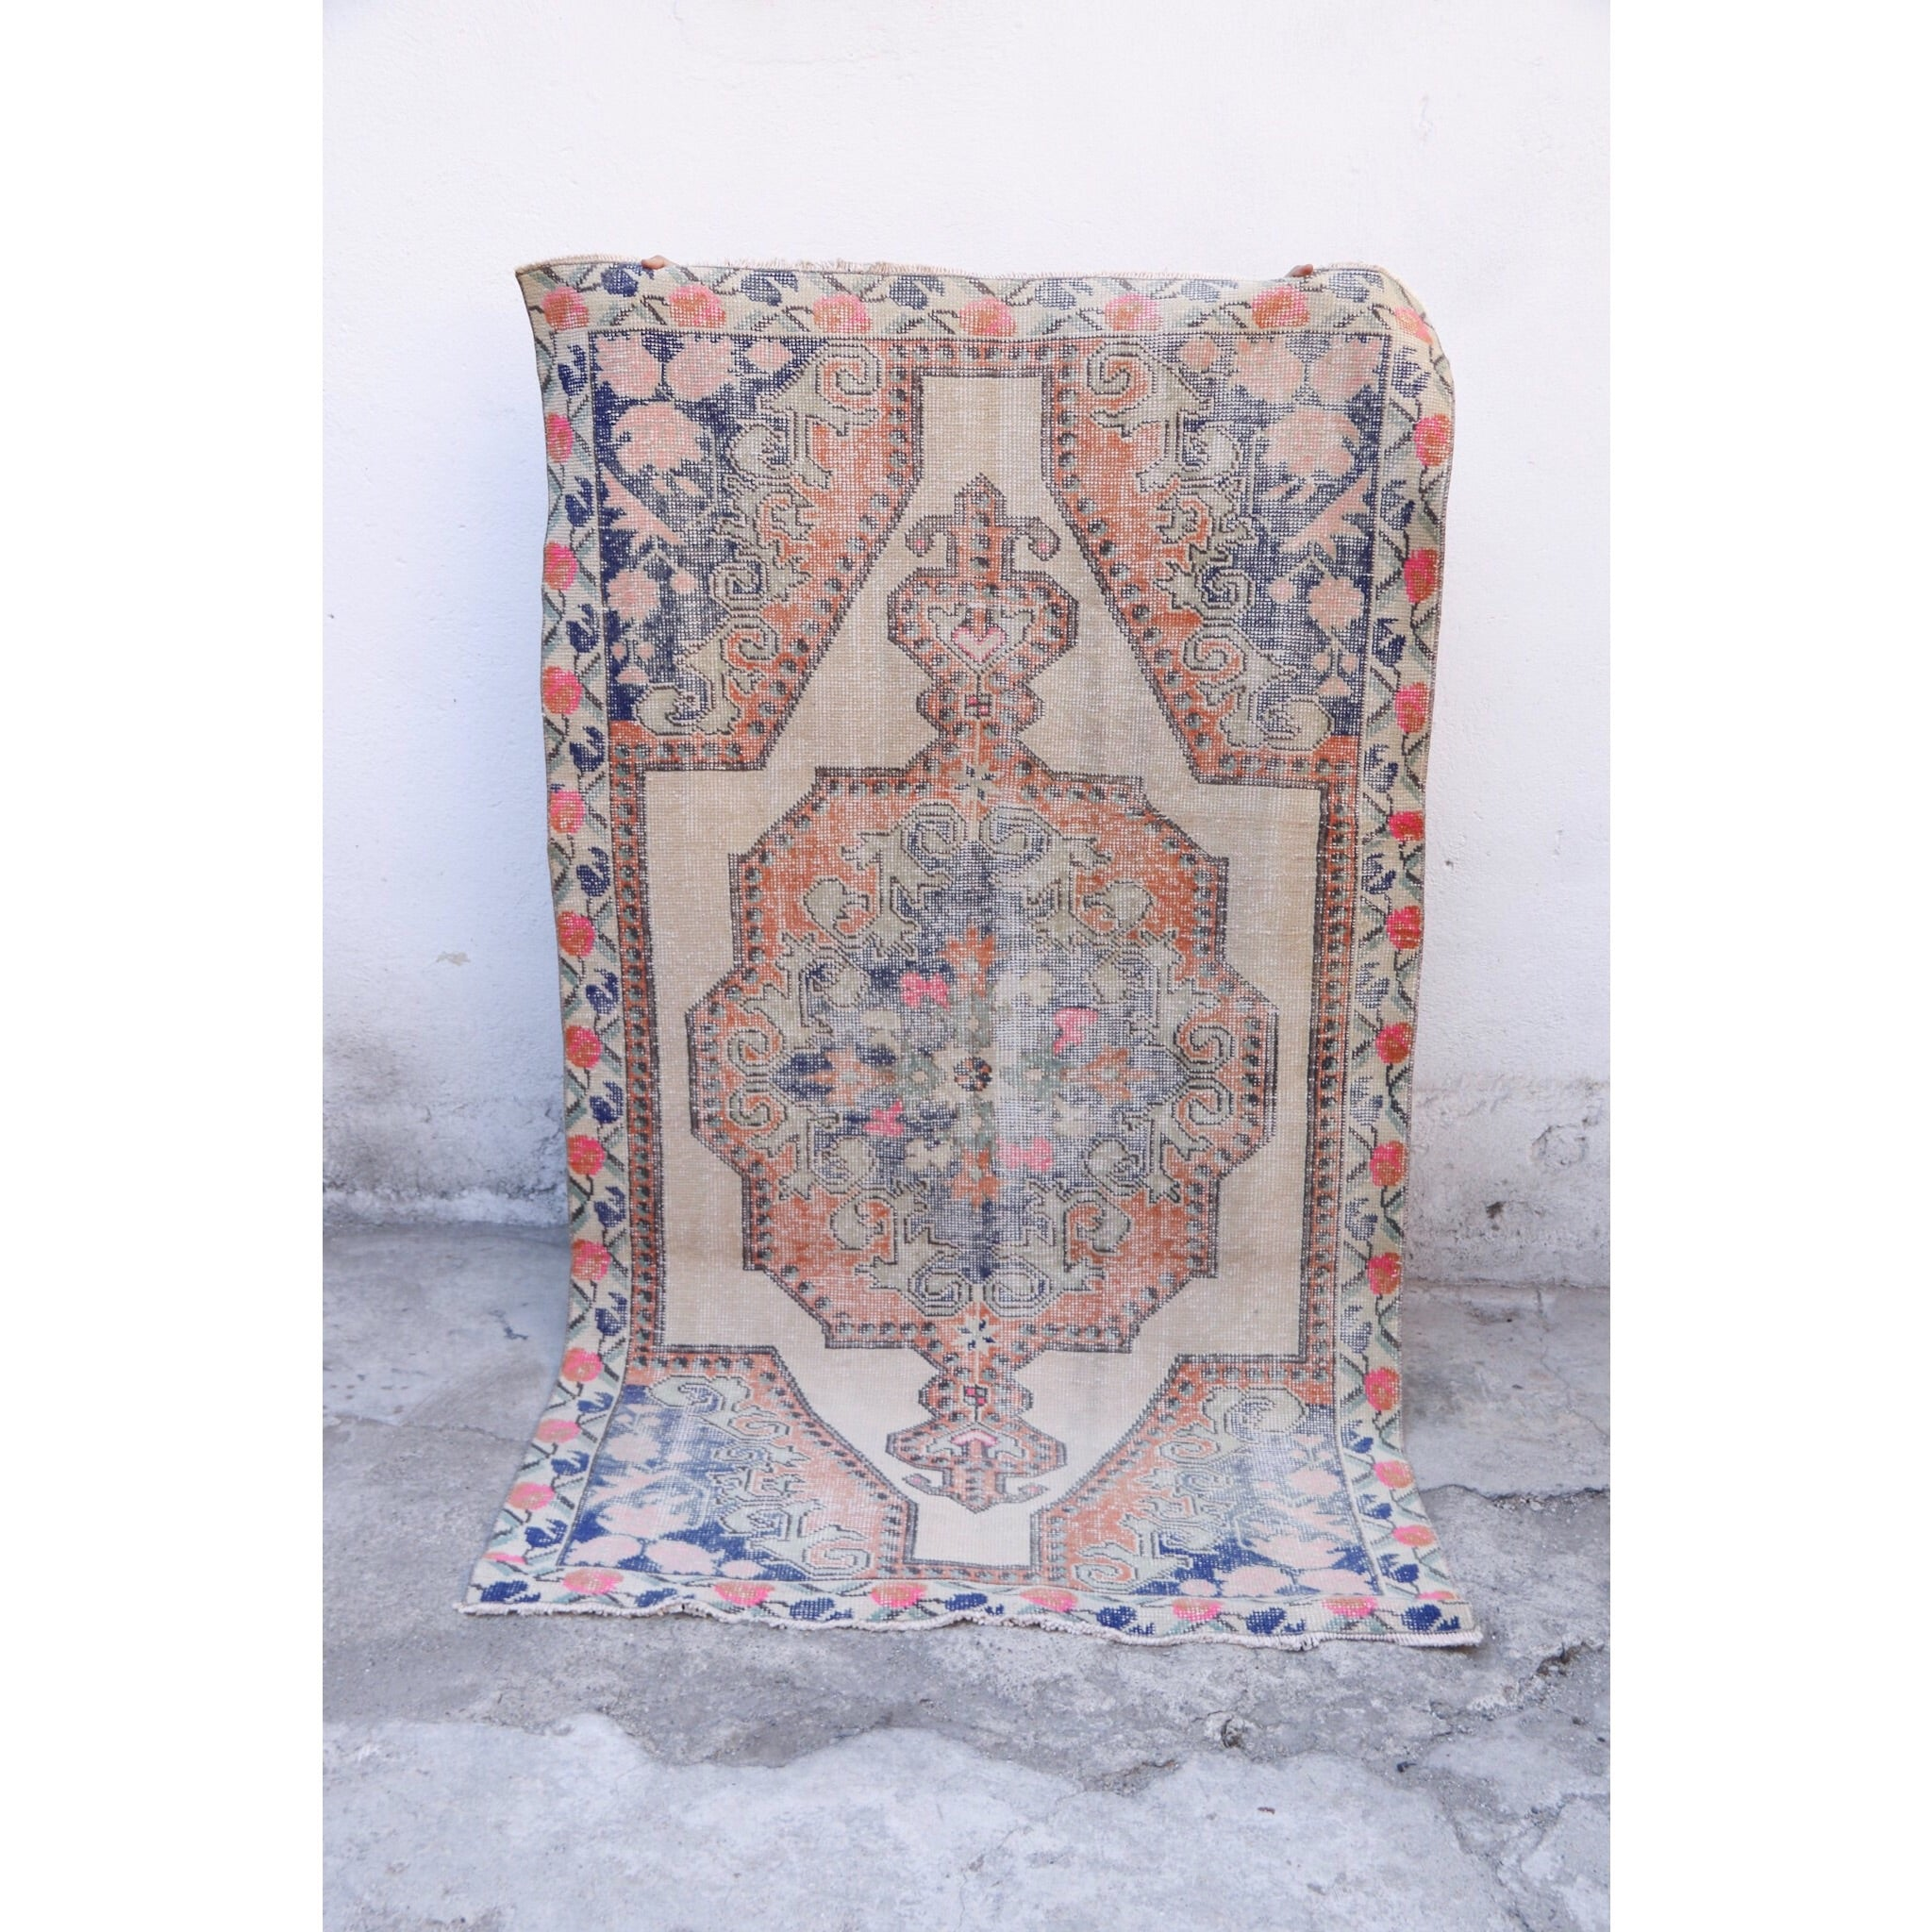 This Avanoz handwoven vintage Turkish rug has a beautiful pinks and blues on a neutral background with tangerine accents.